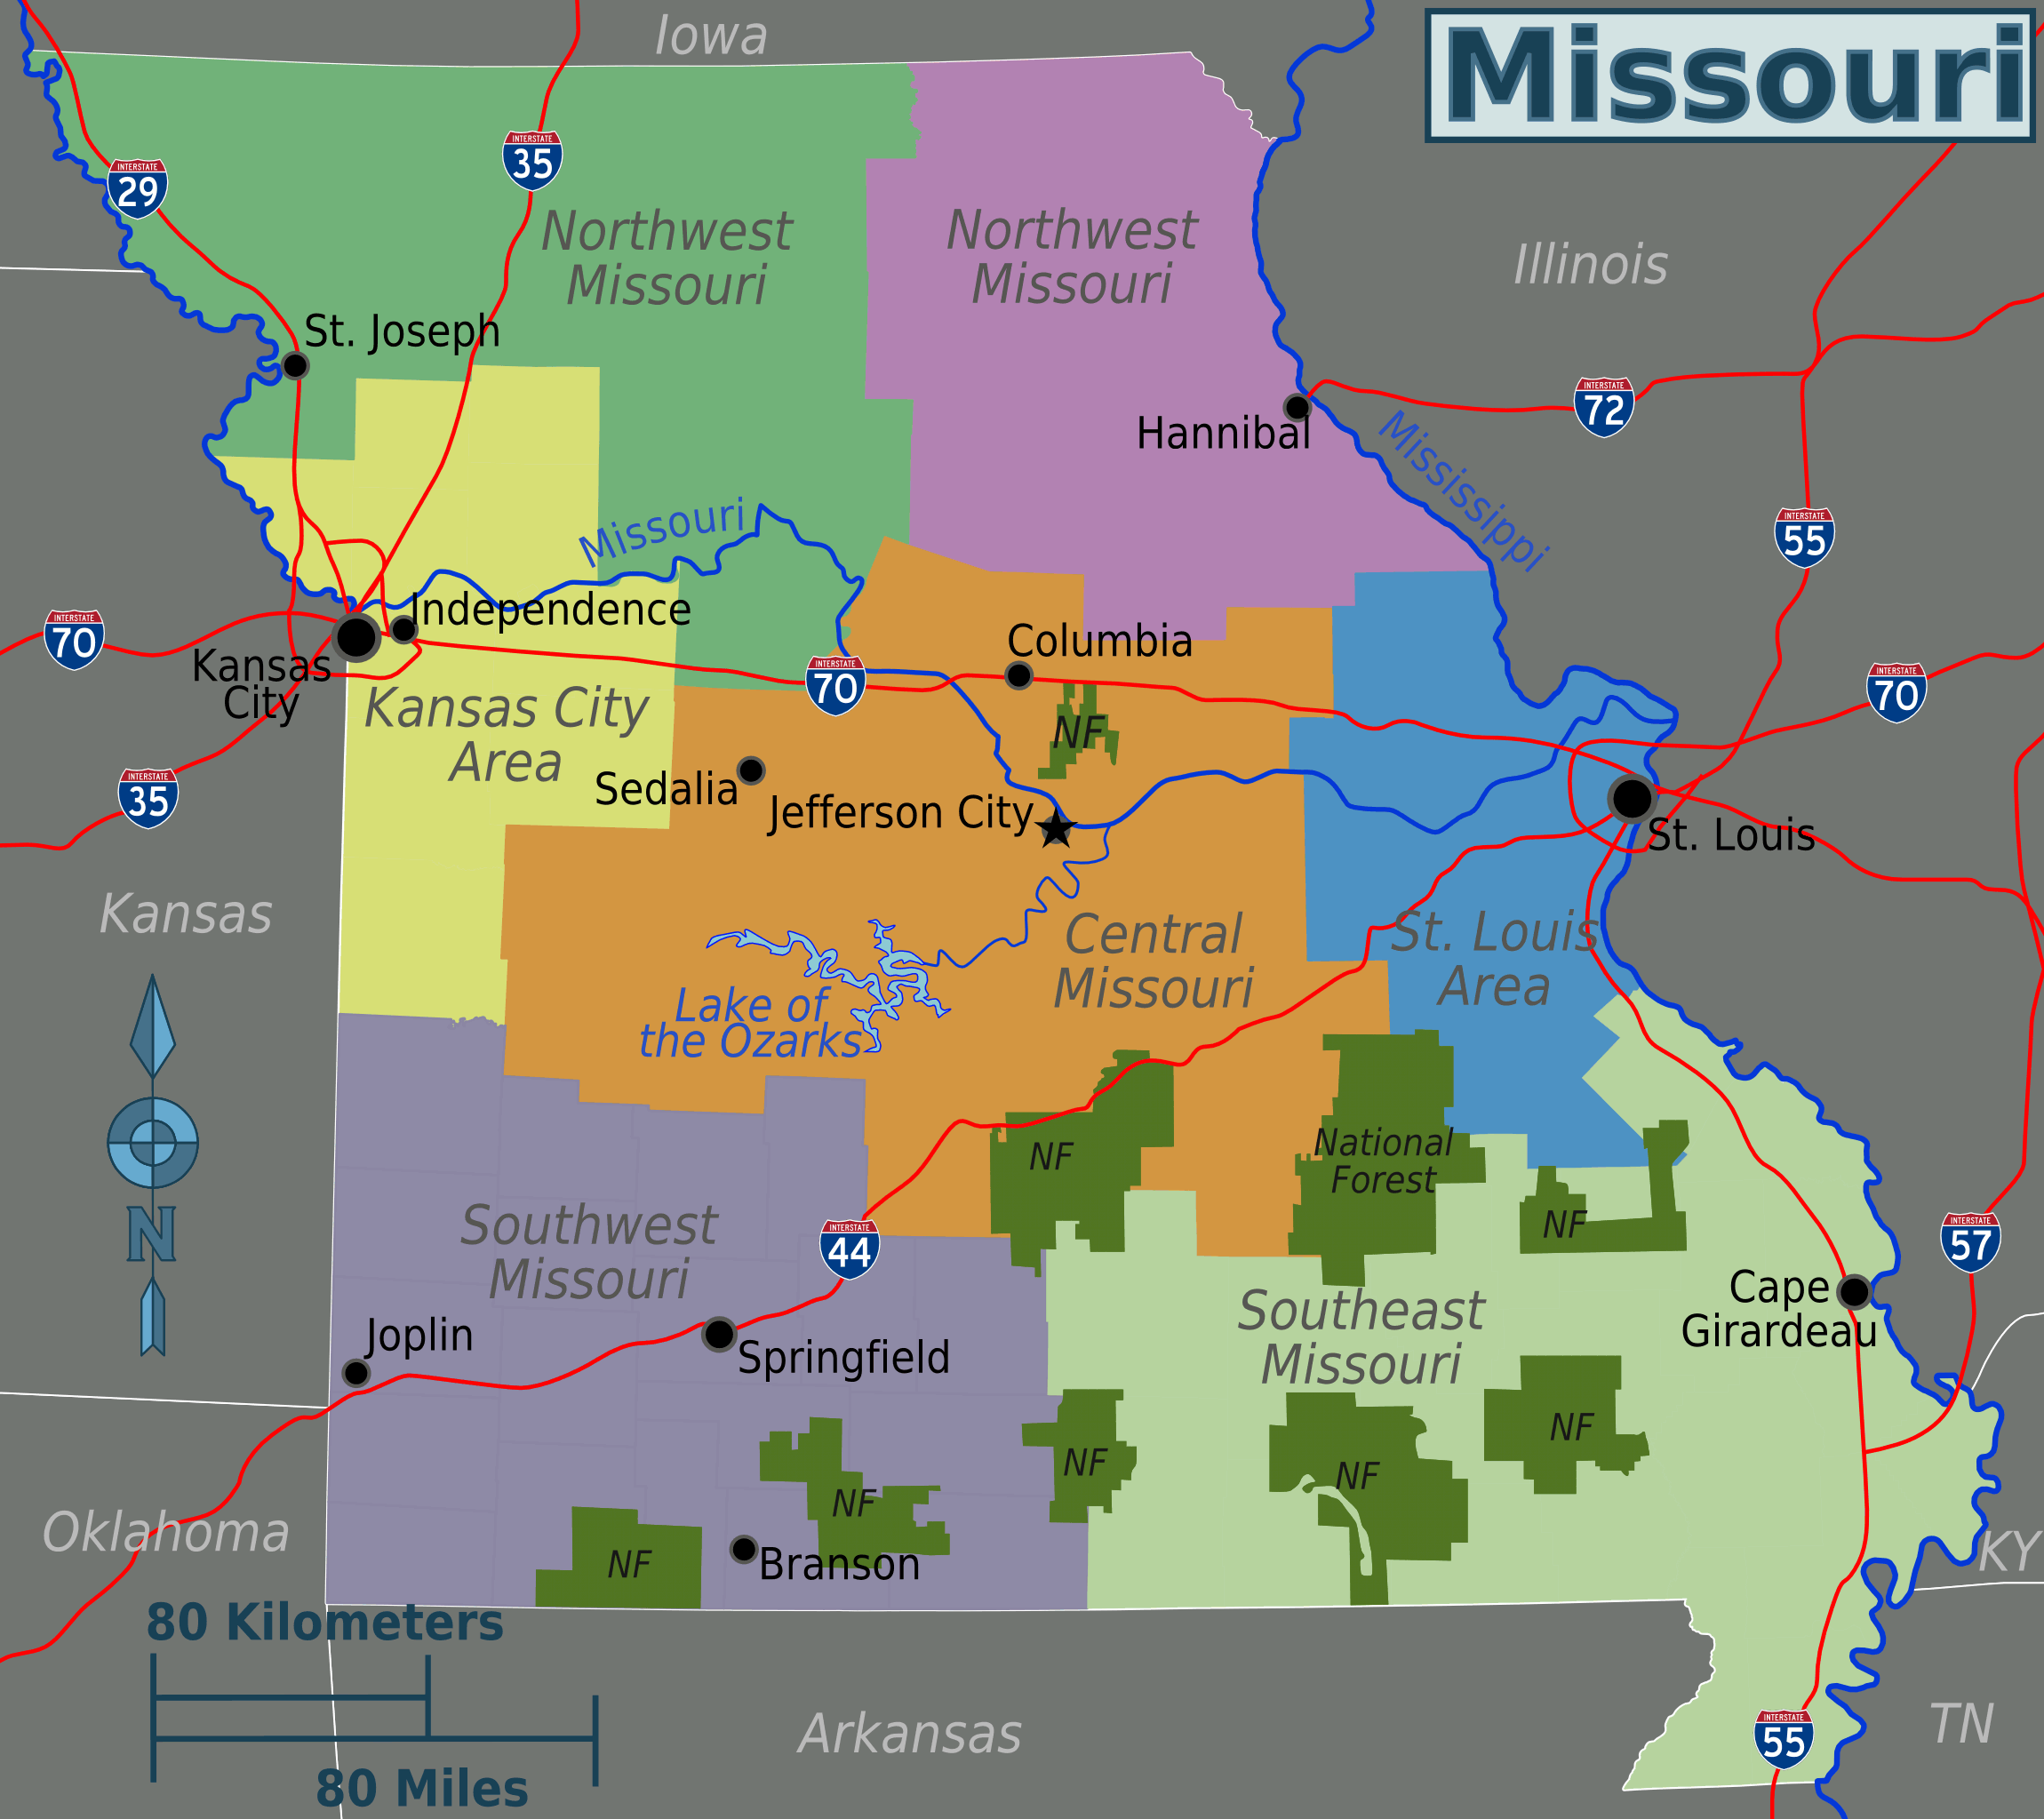 Missouri Regions Map